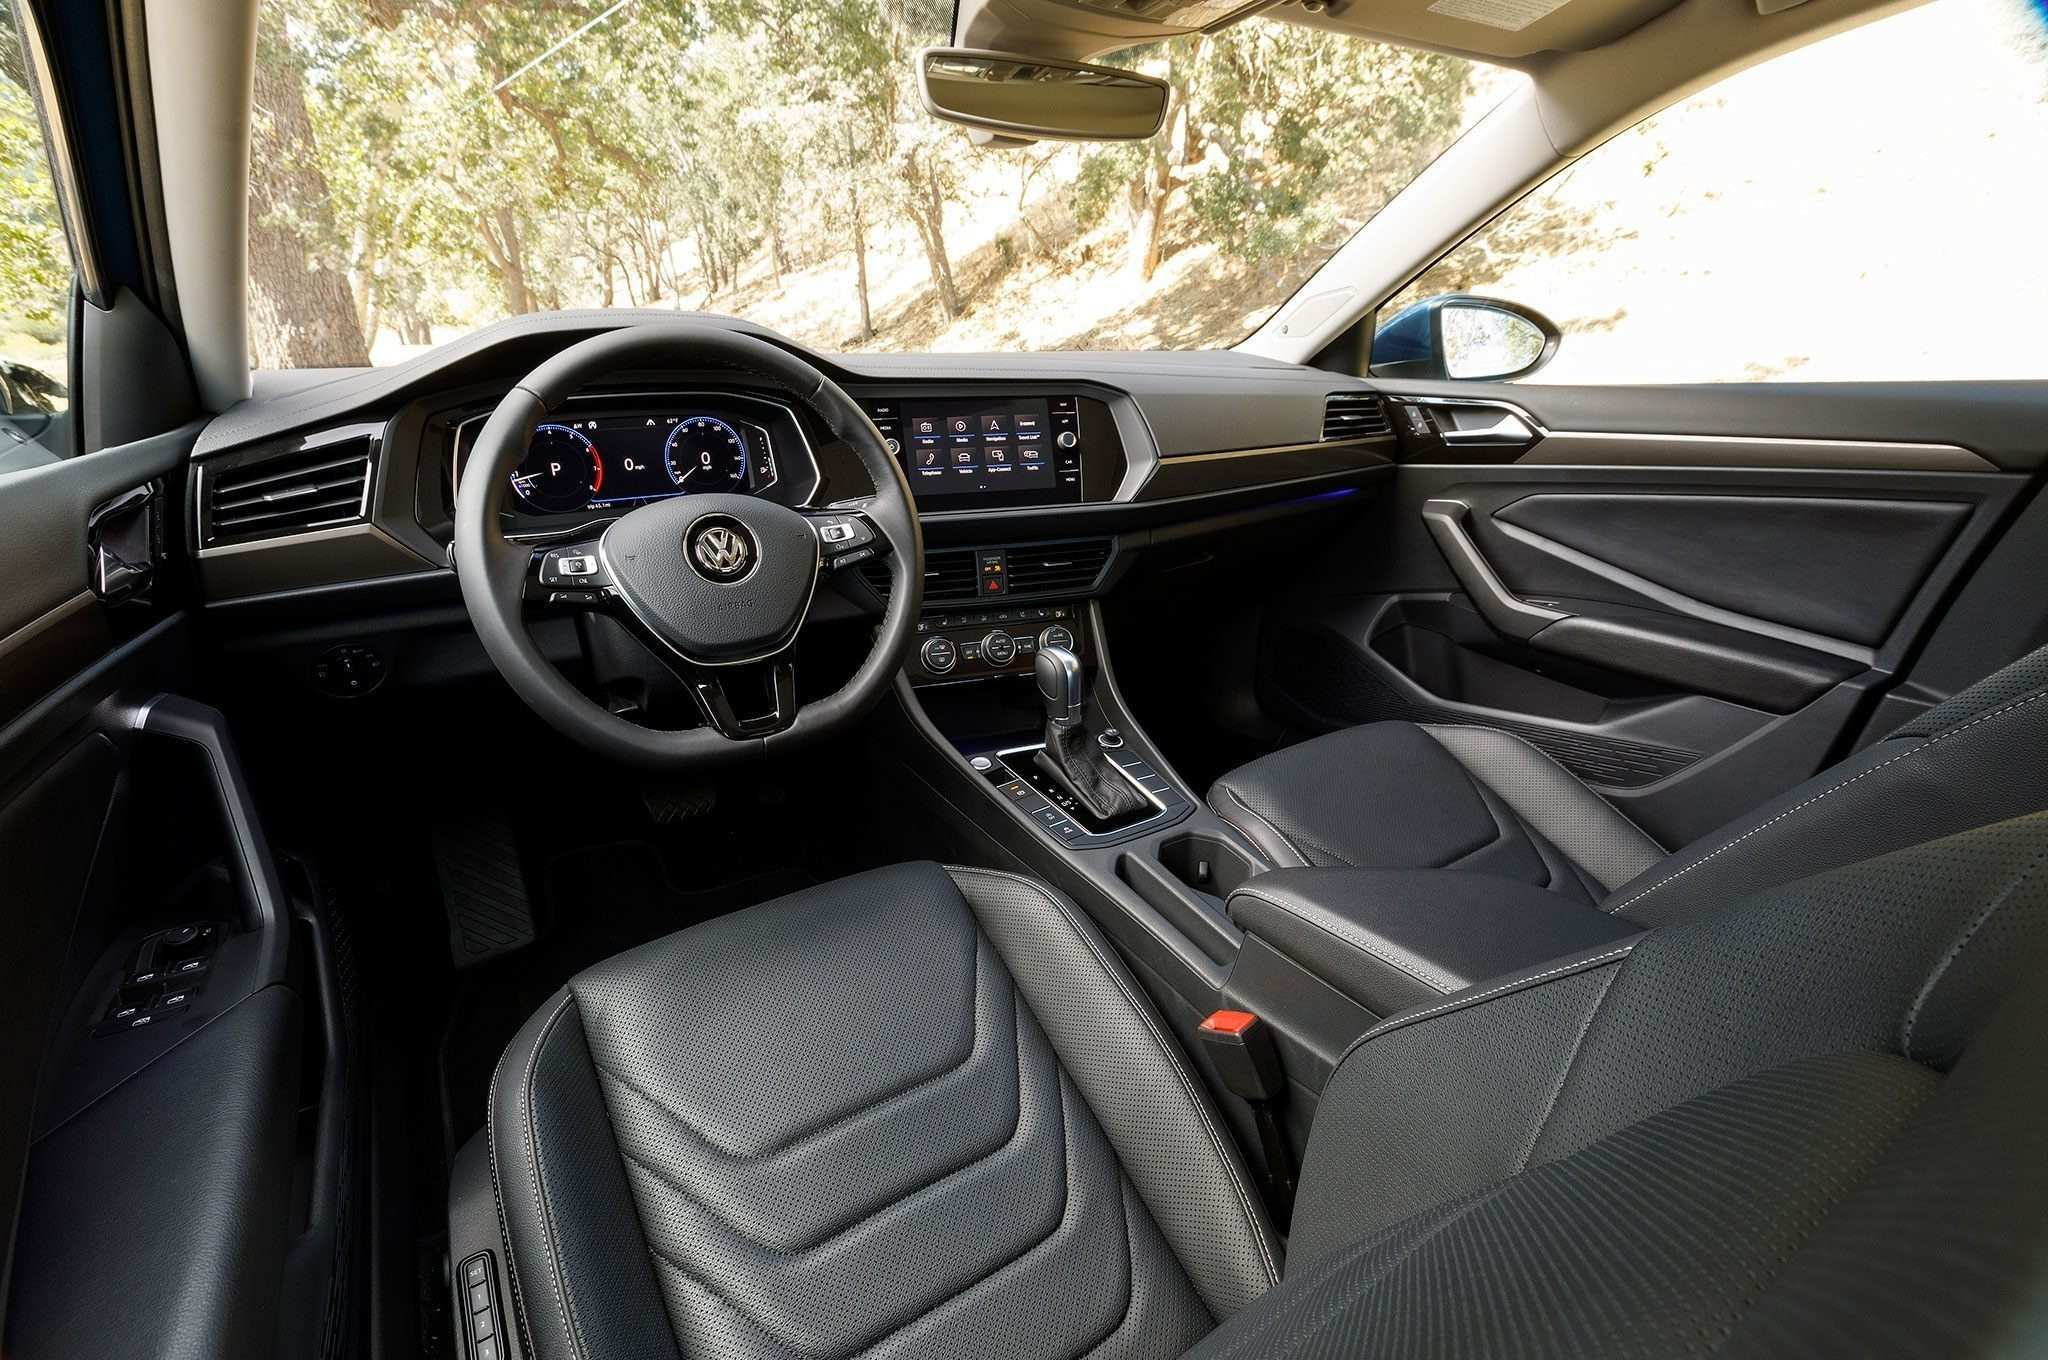 19 Gallery of 2019 Vw Jetta Tdi Exterior and Interior with 2019 Vw Jetta Tdi